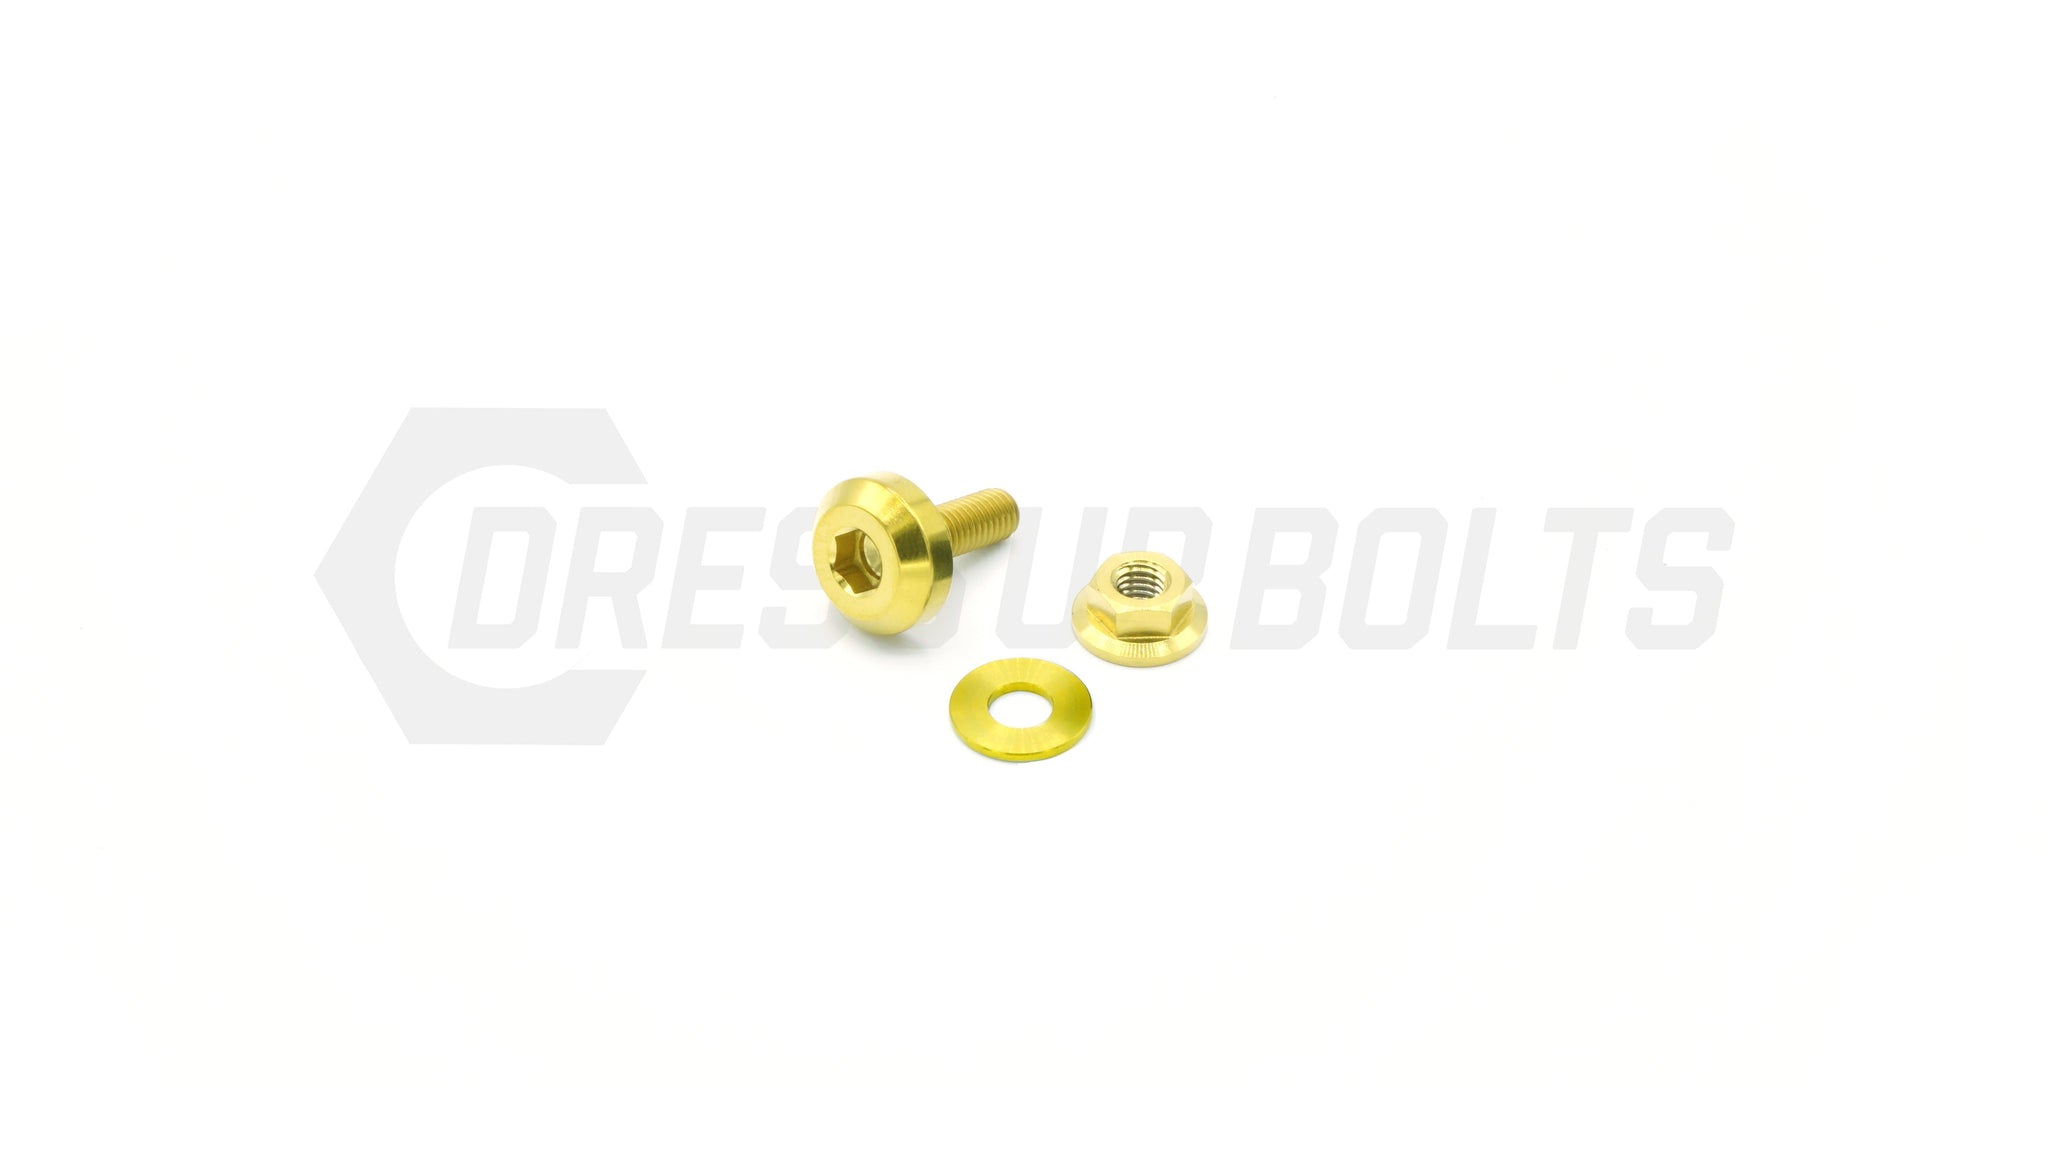 Dress Up Bolts Titanium Widebody Hardware - Combo 8 - DressUpBolts.com